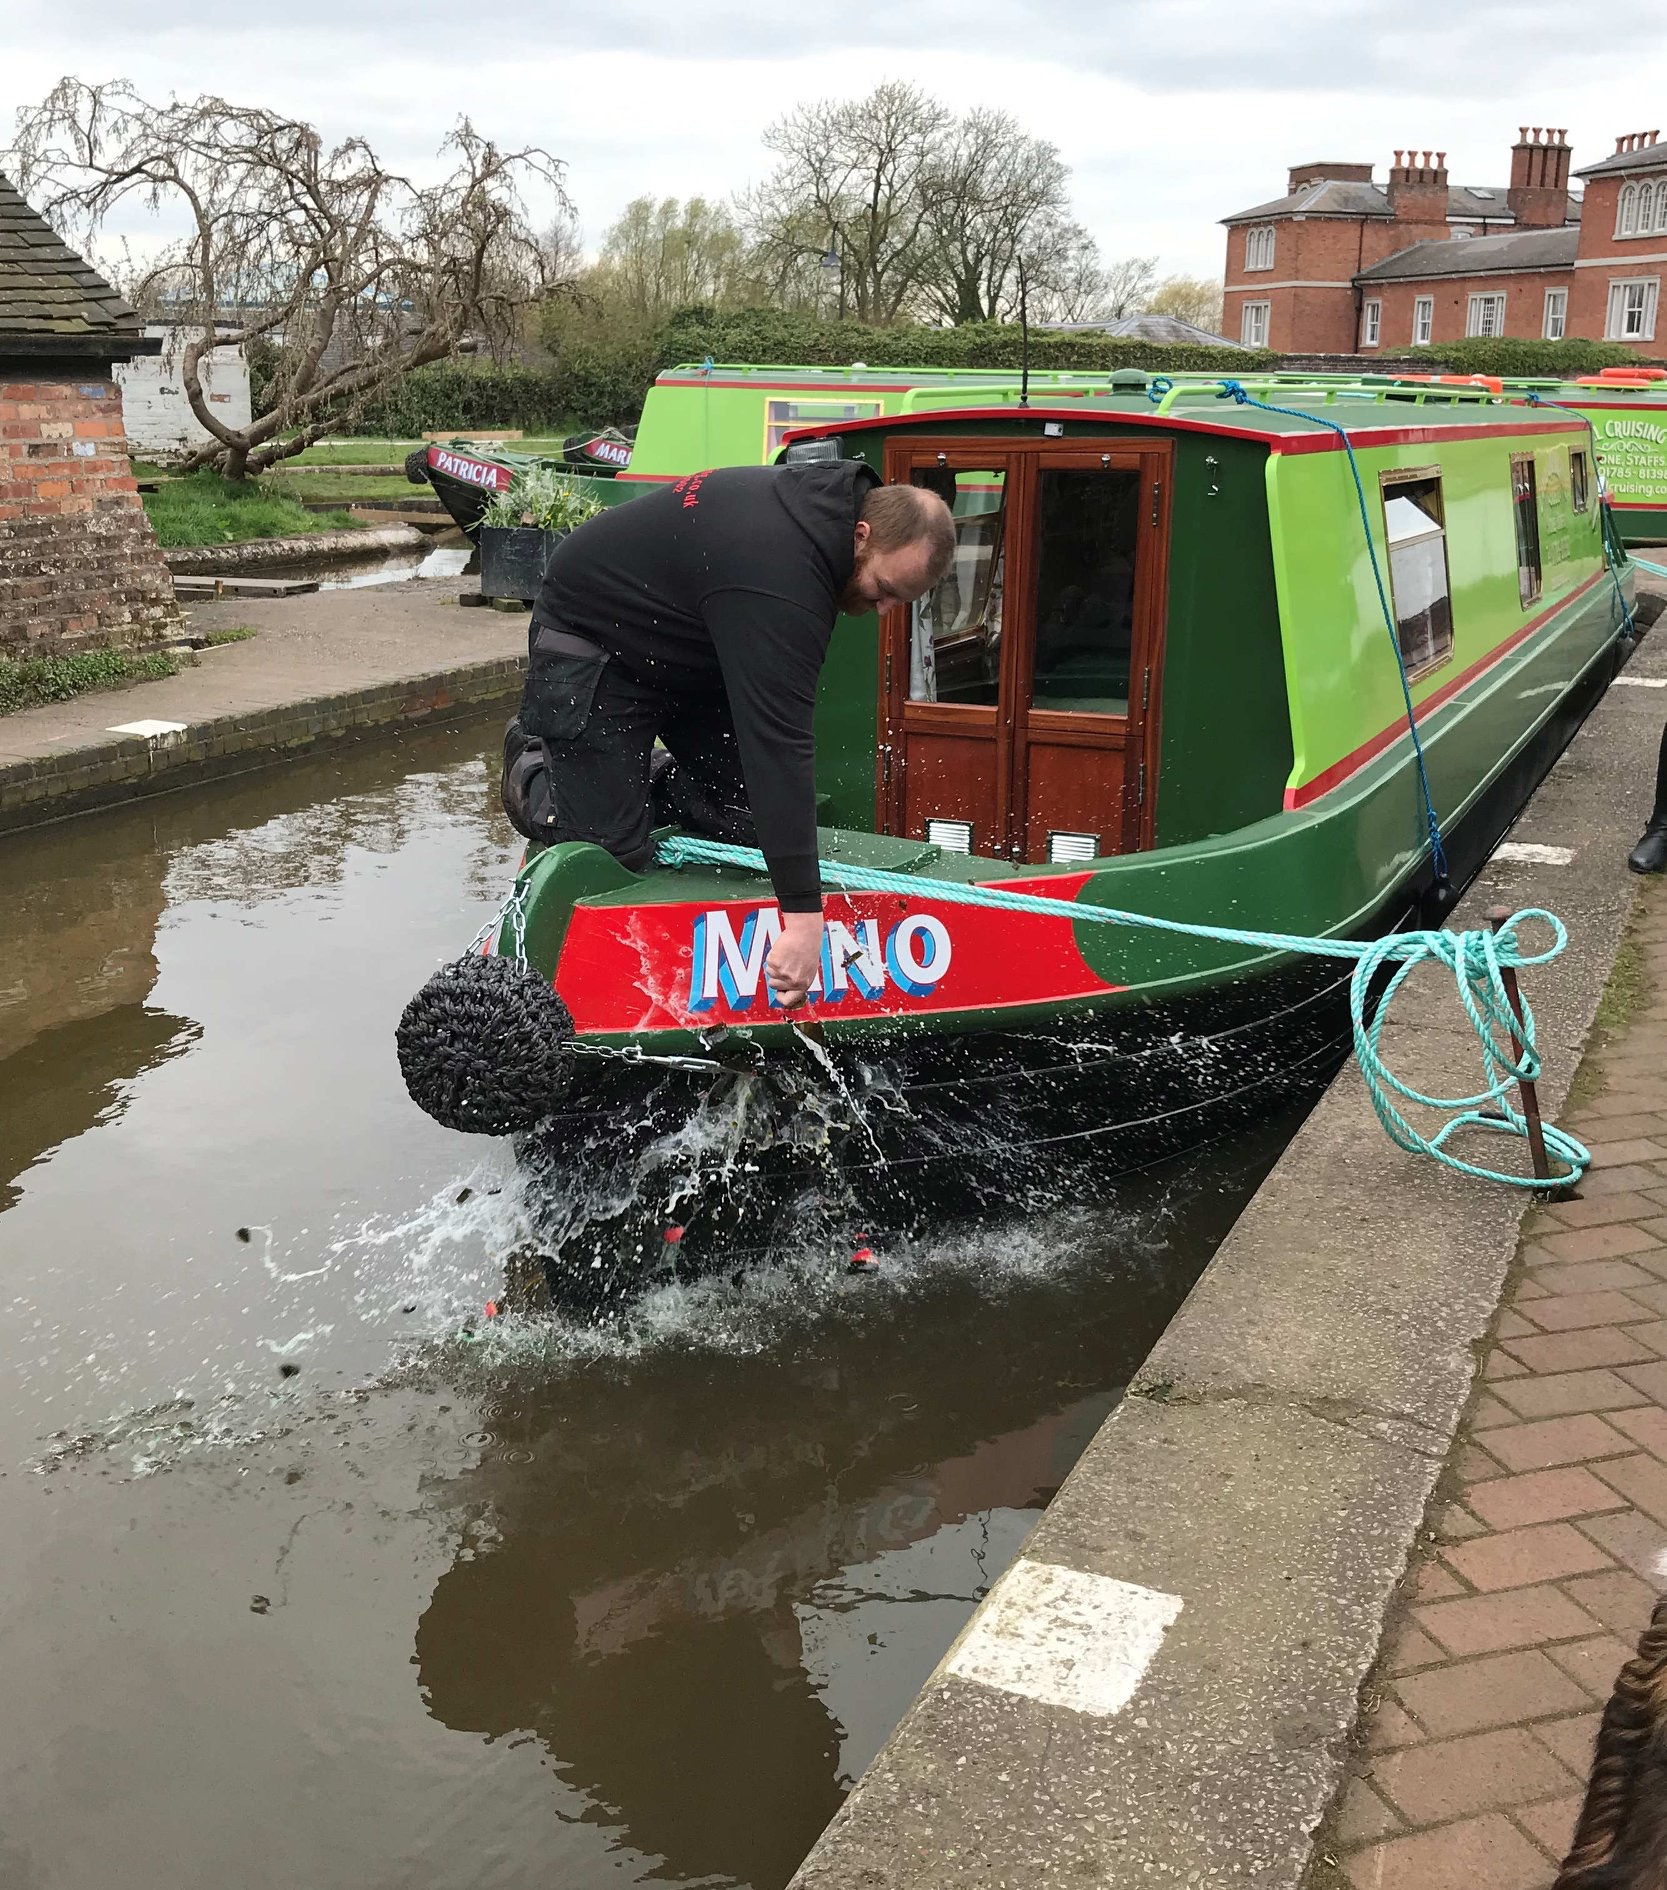 The Mino class canal boat